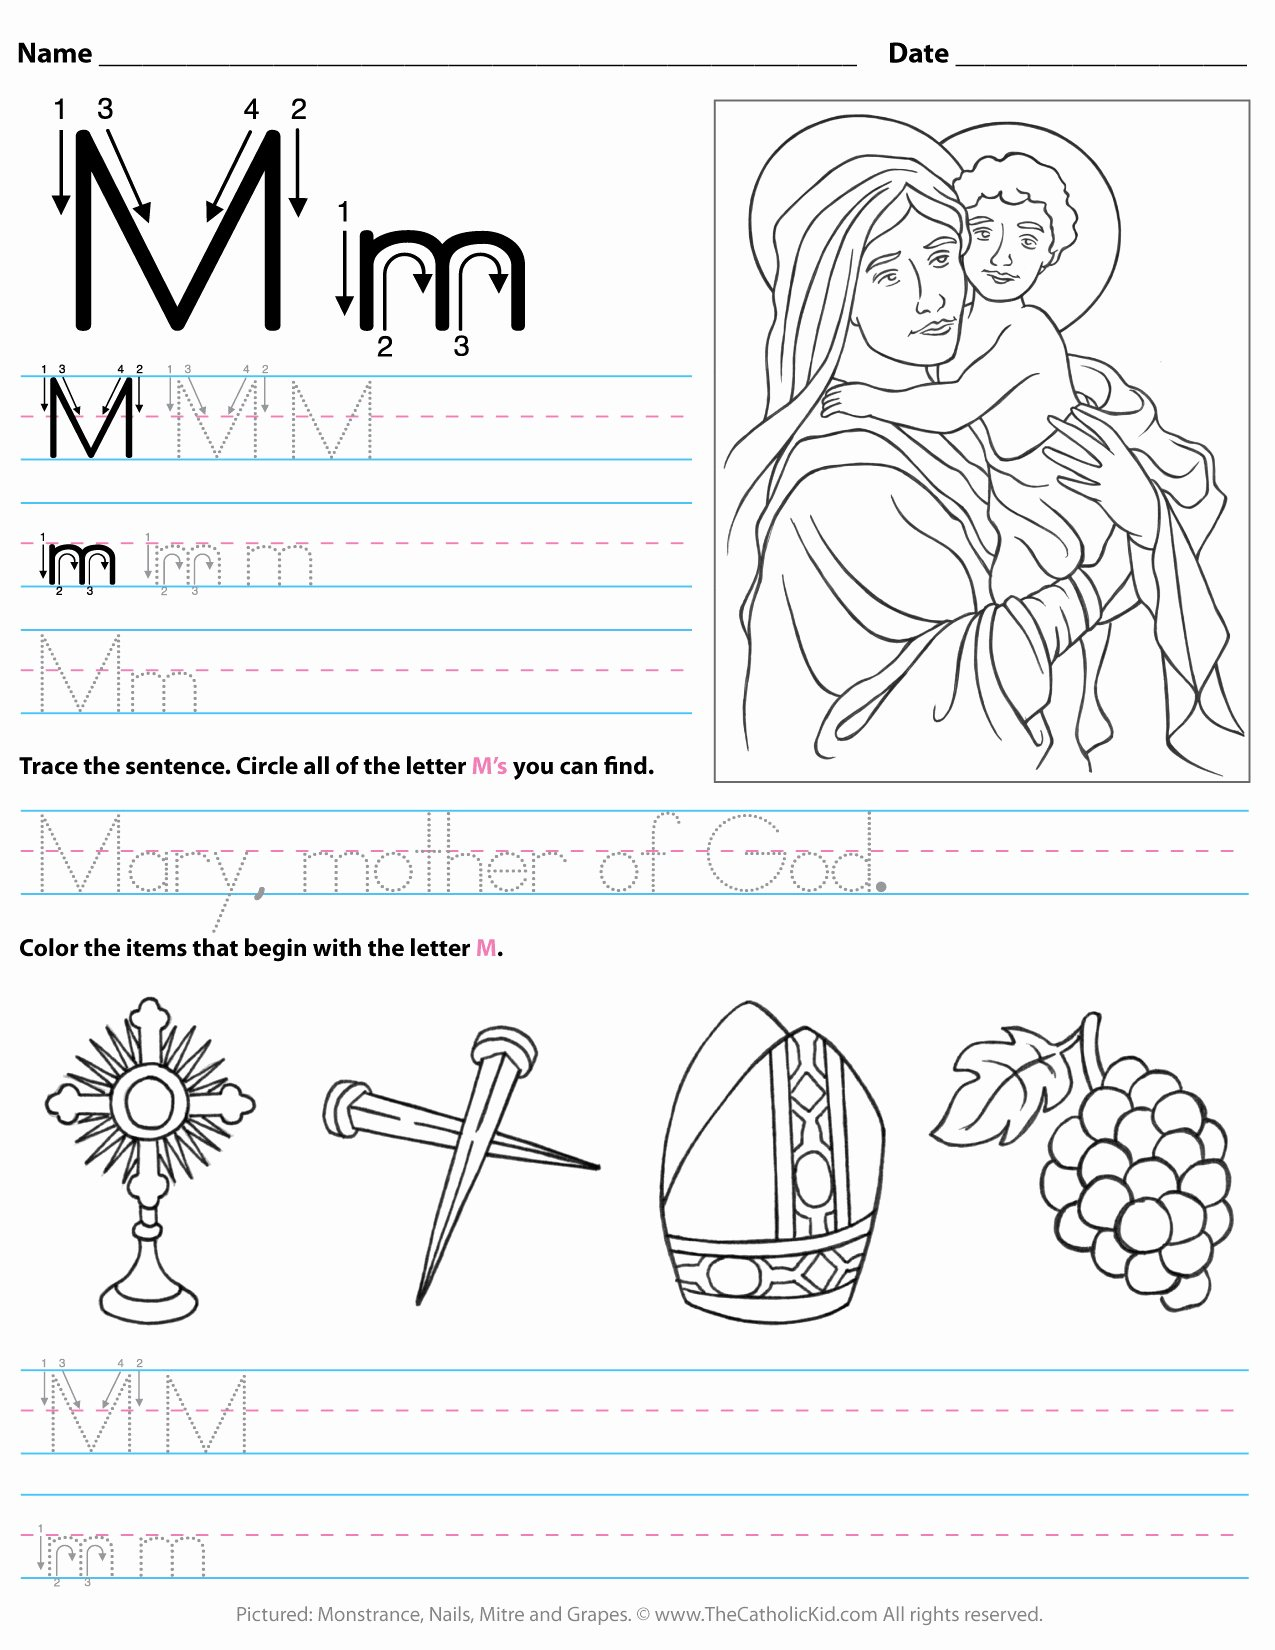 Letter M Worksheets for toddlers Best Of Worksheet Free Alphabet Tracing and Coloring Printable is